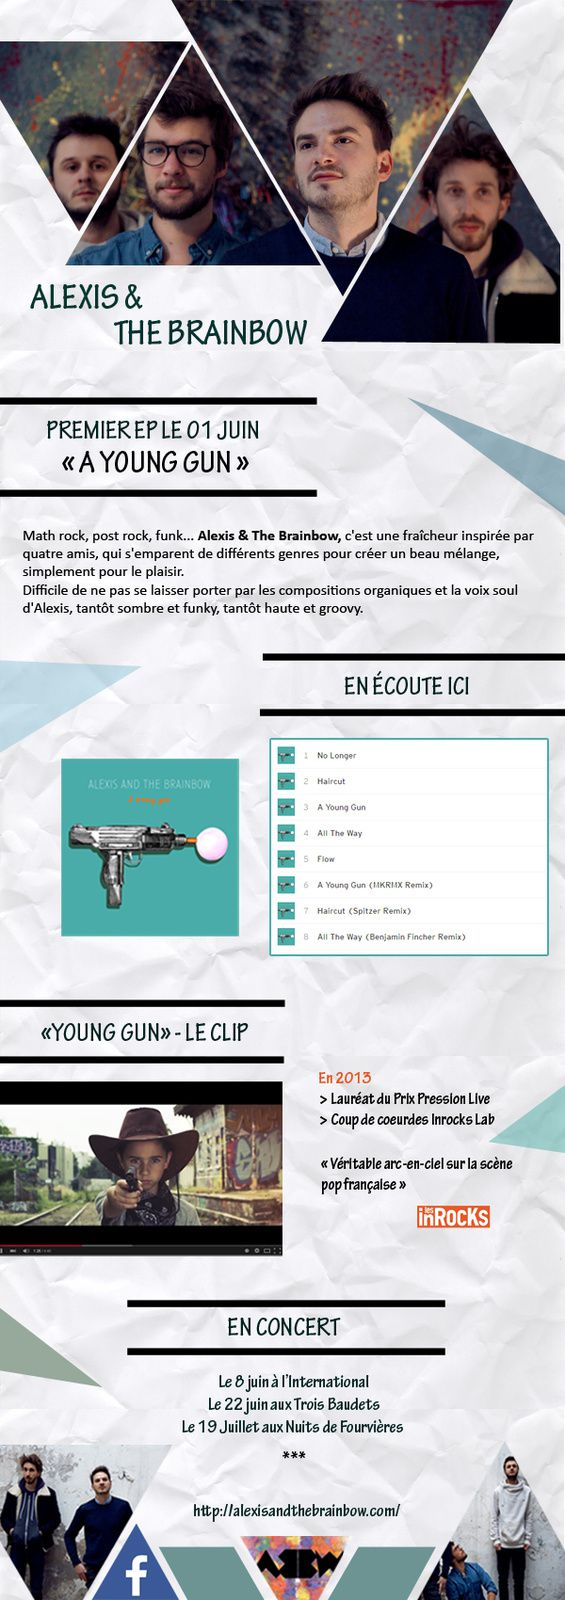 Alexis and The Brainbow &gt&#x3B; Premier EP &quot&#x3B;A Young Gun&quot&#x3B; le 1er juin! / CHANSON MUSIQUE / ACTUALITE